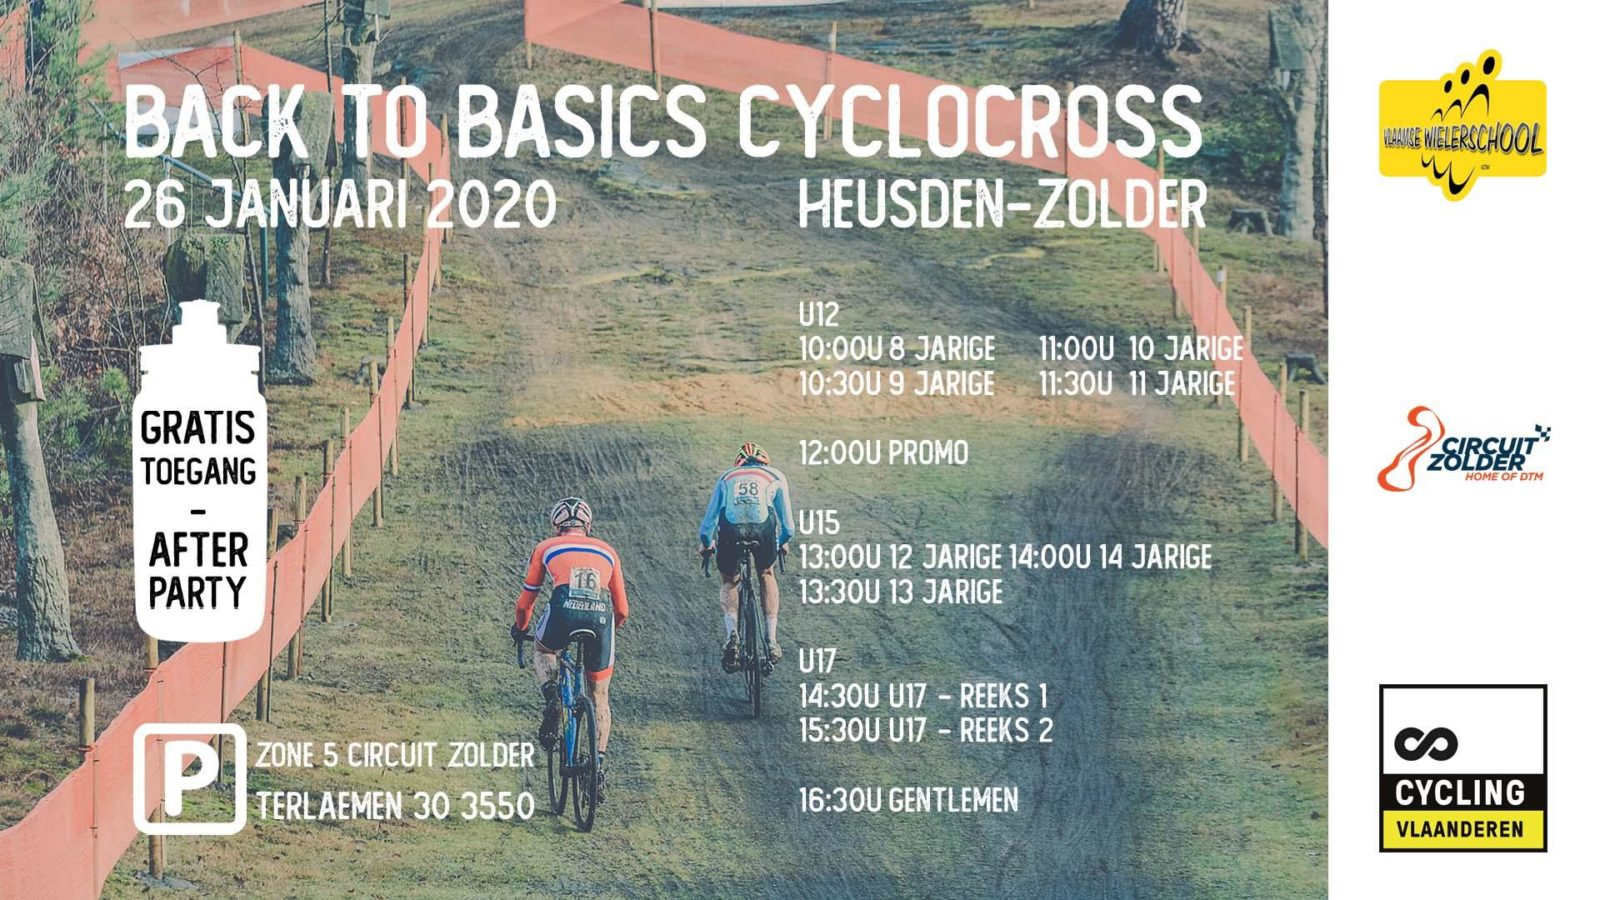 BACK TO BASICS CYCLOCROSS